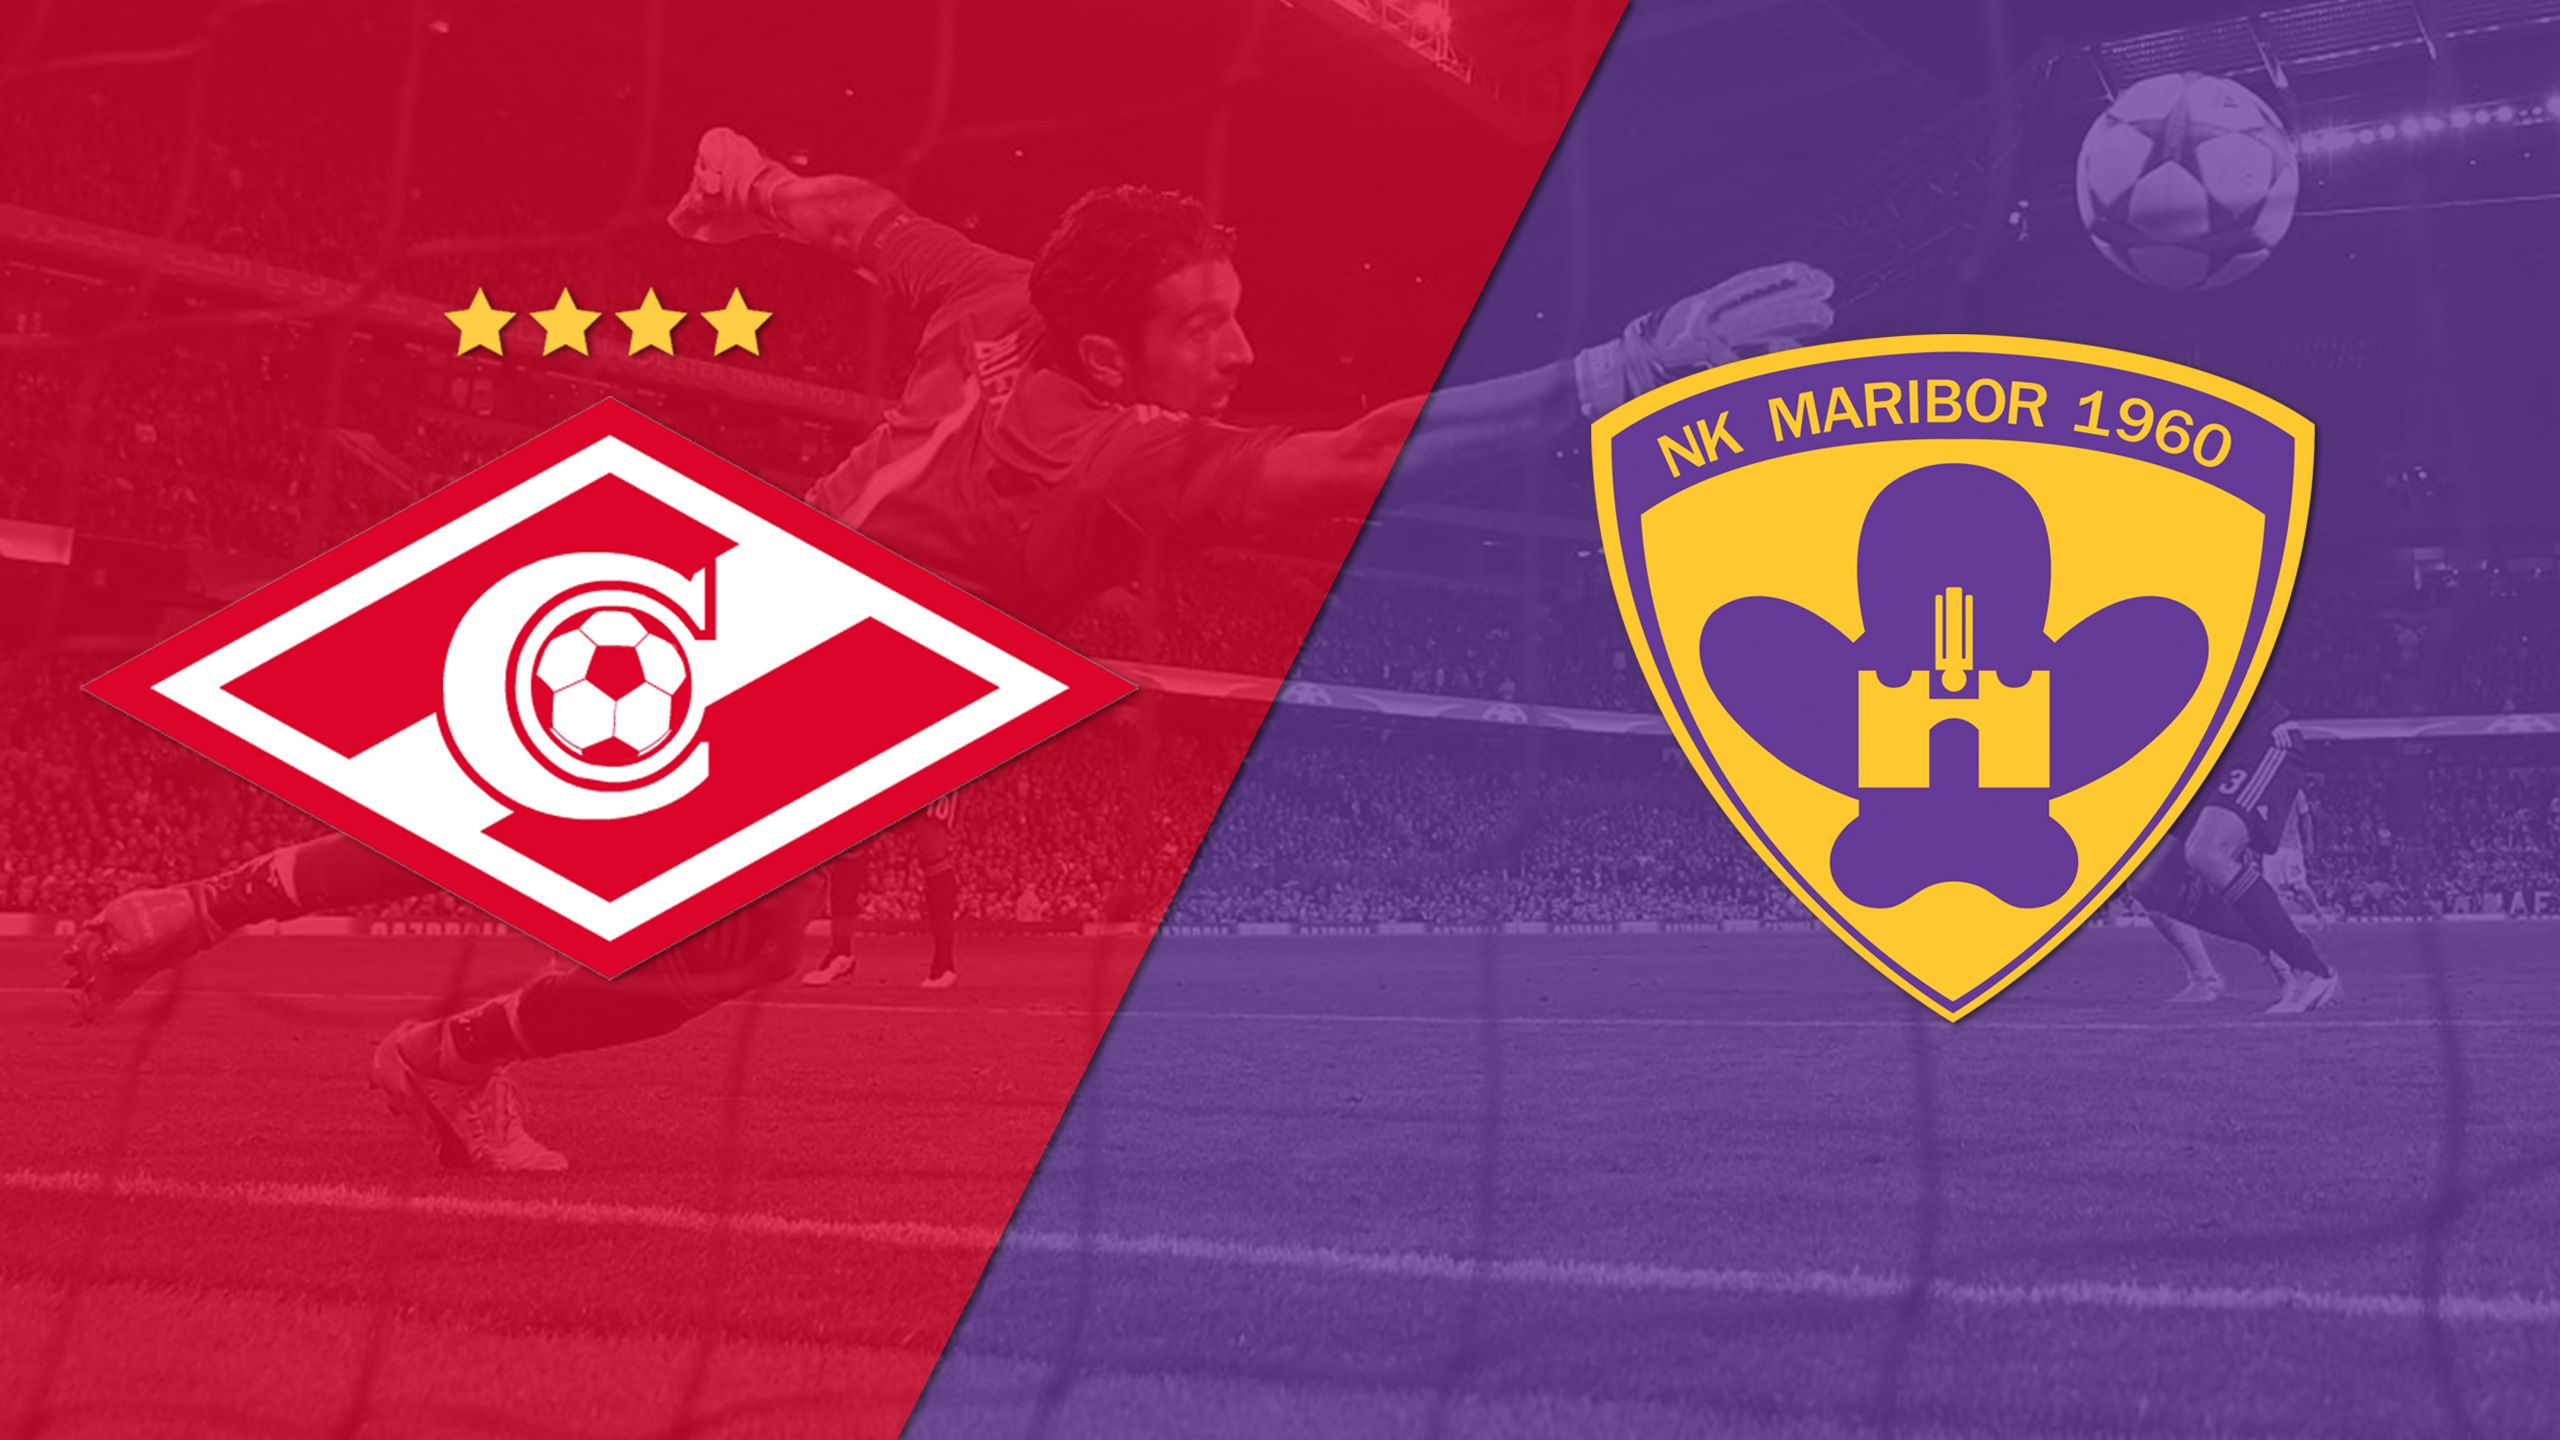 Spartak Moscow vs. NK Maribor (Group Stage #5) (UEFA Champions League)